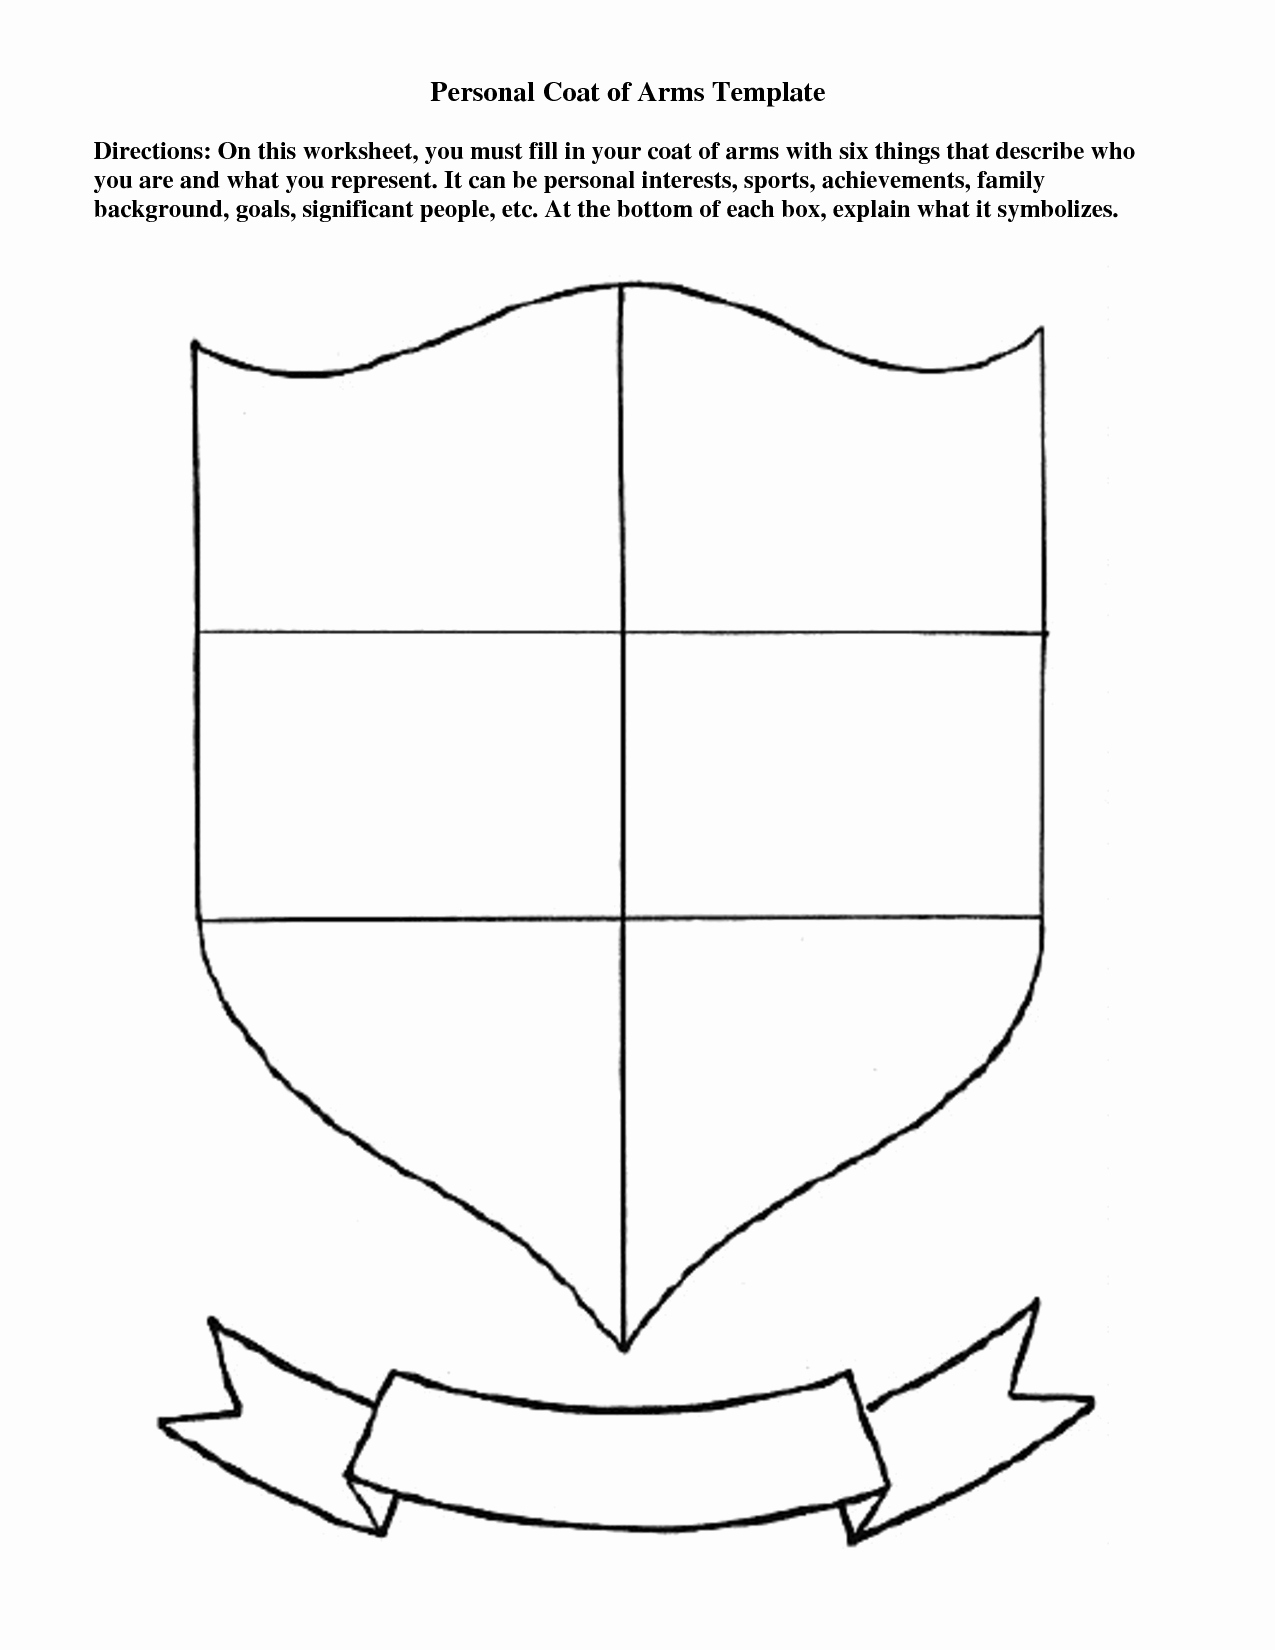 Personal Coat Of Arms Template Unique Coat Arms Template